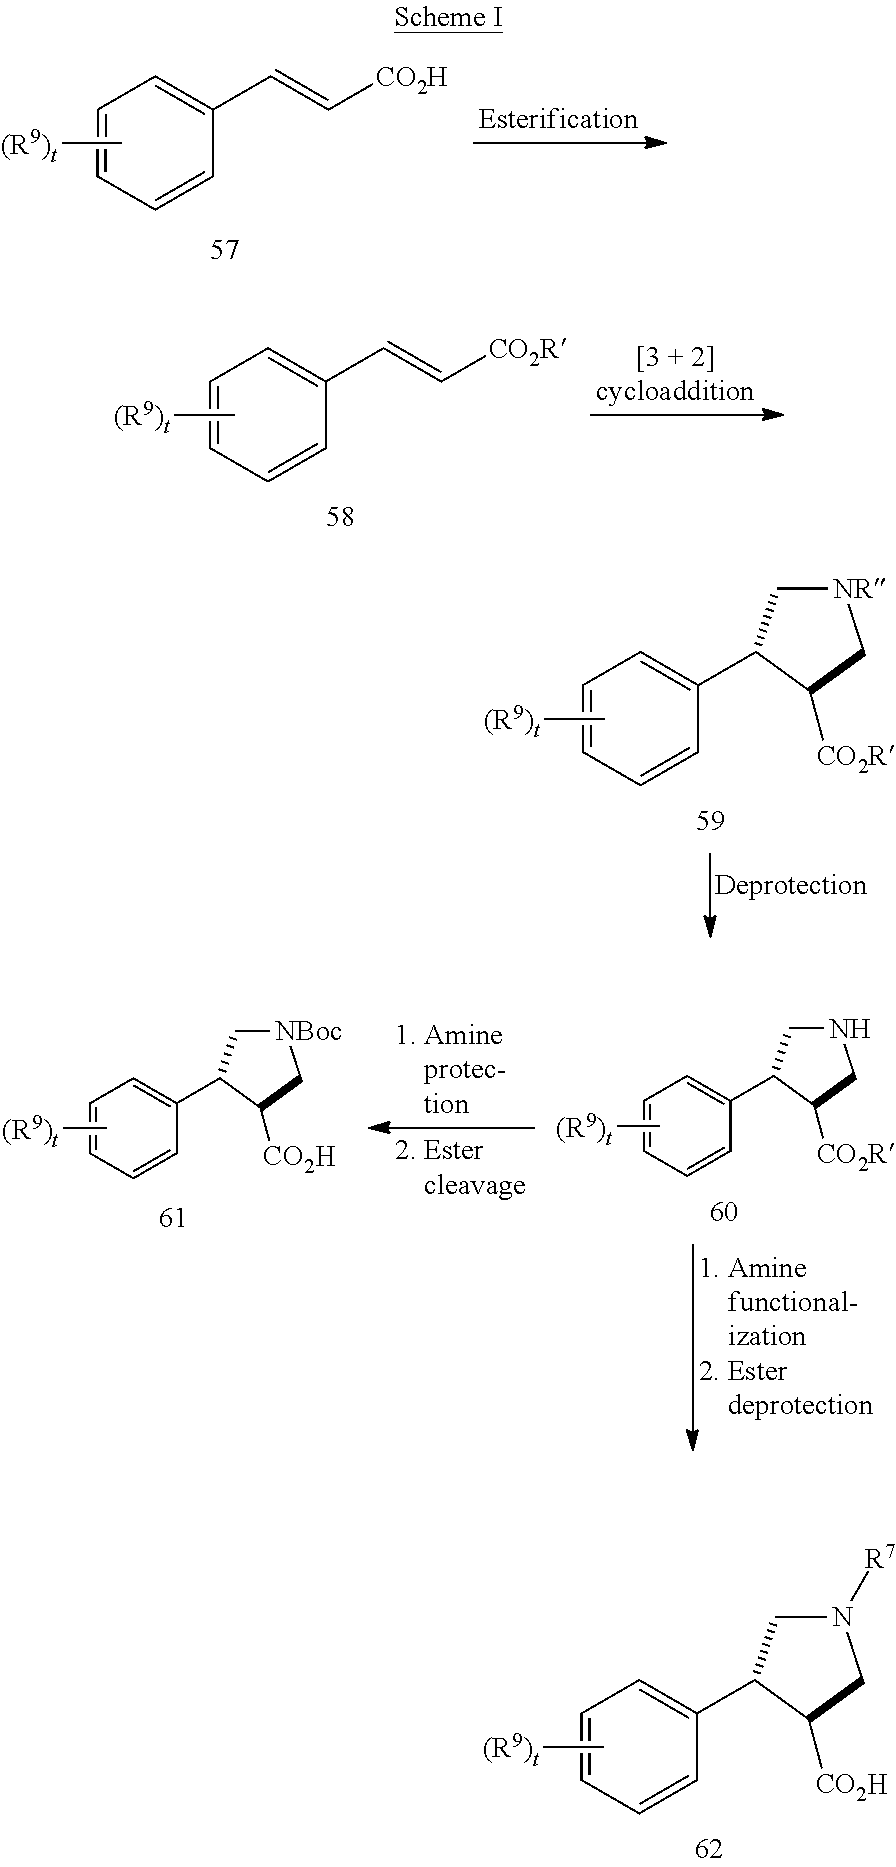 US20140221386A1 - Combinations of akt inhibitor compounds